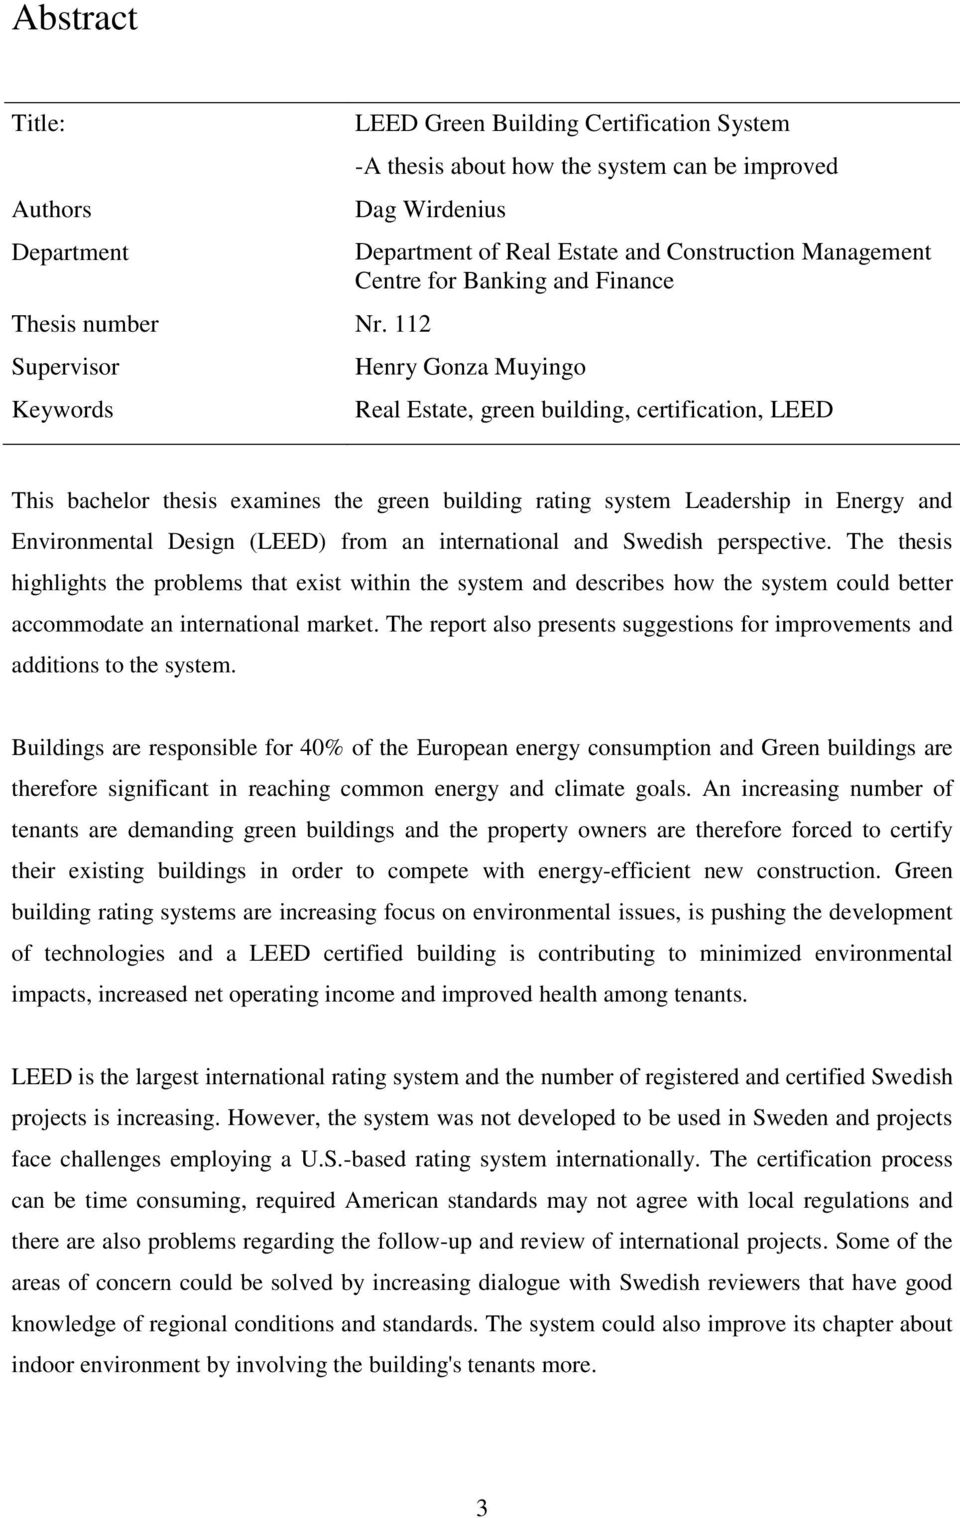 examines the green building rating system Leadership in Energy and Environmental Design (LEED) from an international and Swedish perspective.